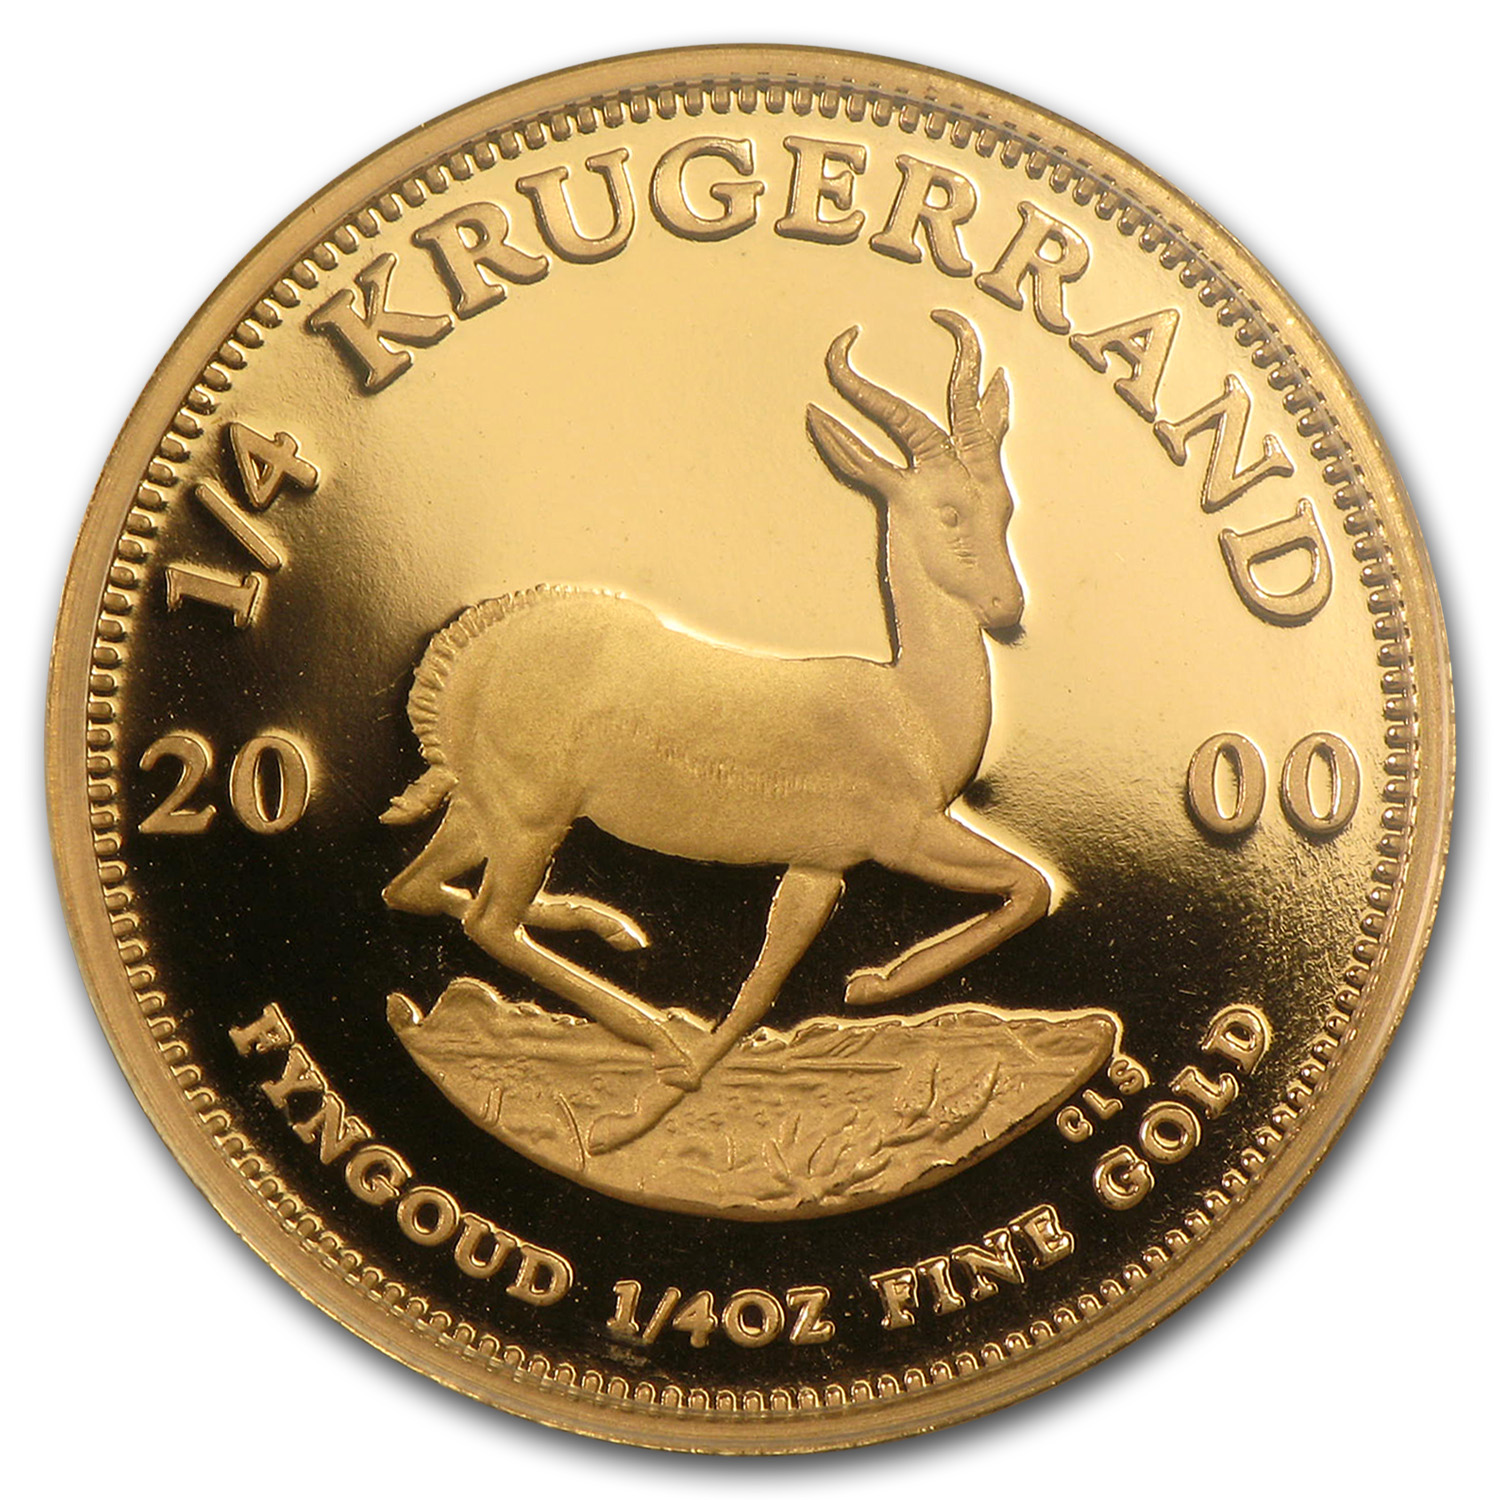 2000 South Africa 1/4 oz Proof Gold Krugerrand